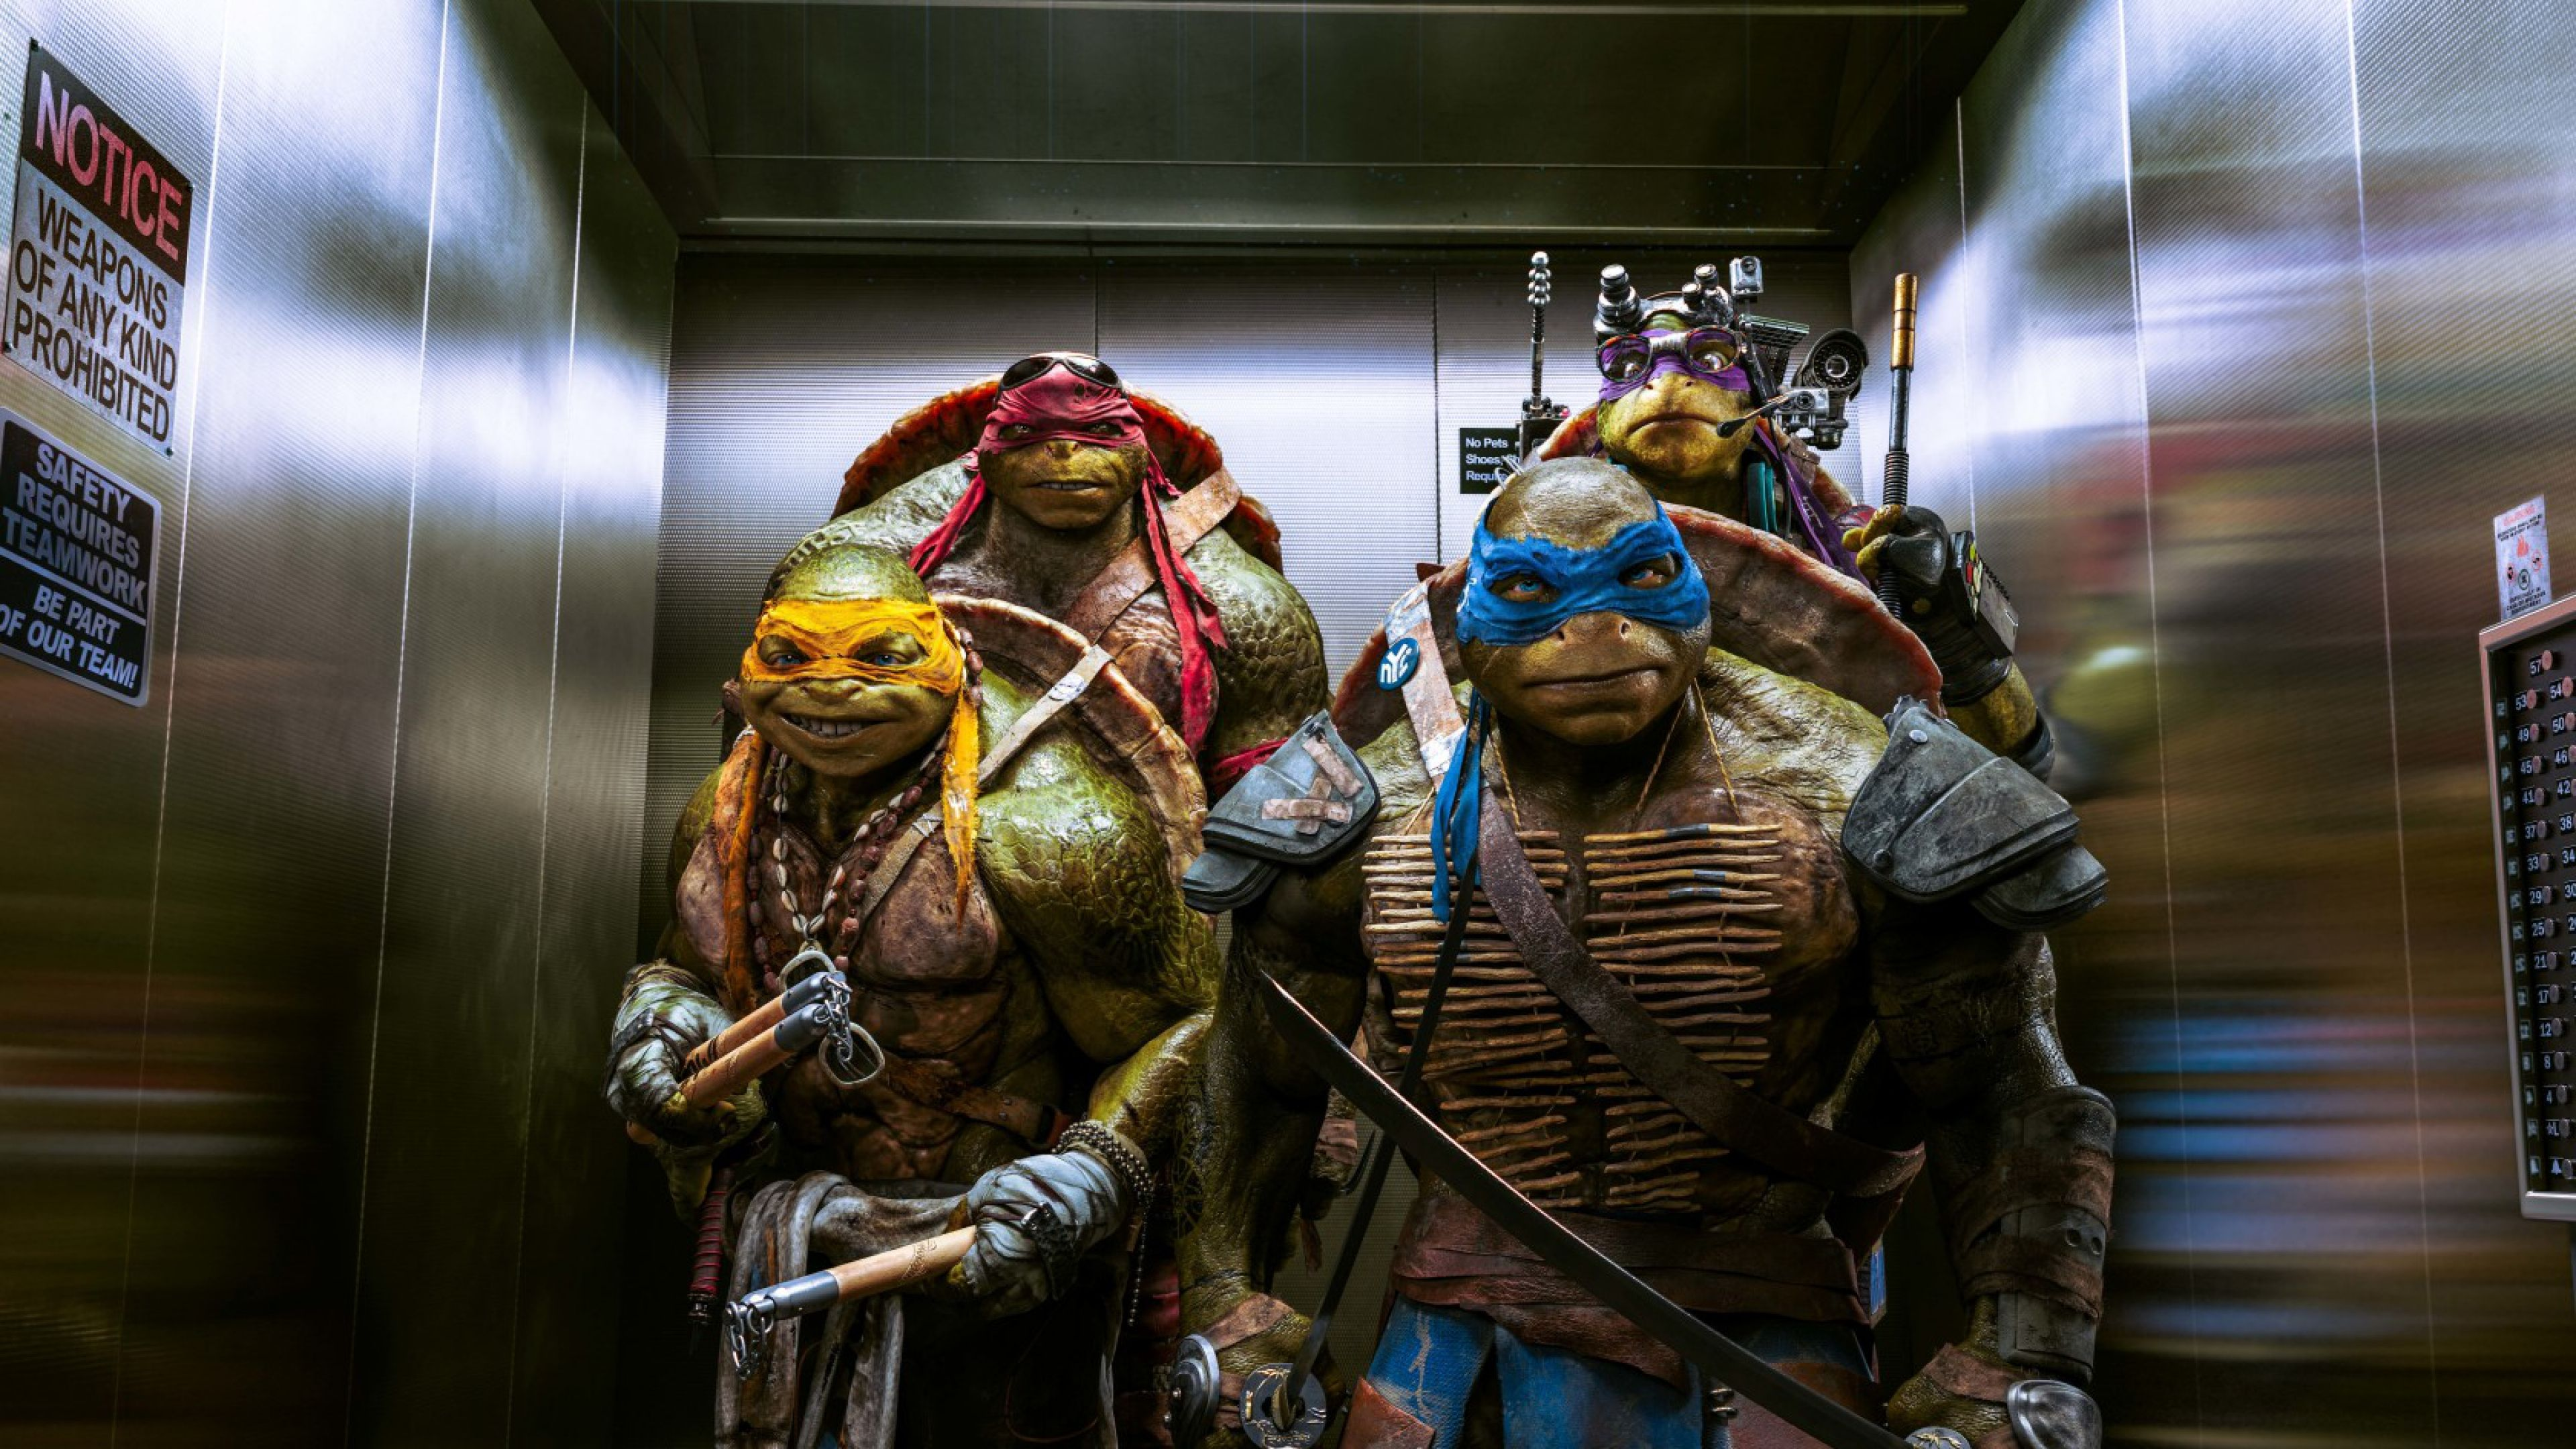 Teenage Mutant Ninja Turtles Wallpaper Wallpaperesque HD